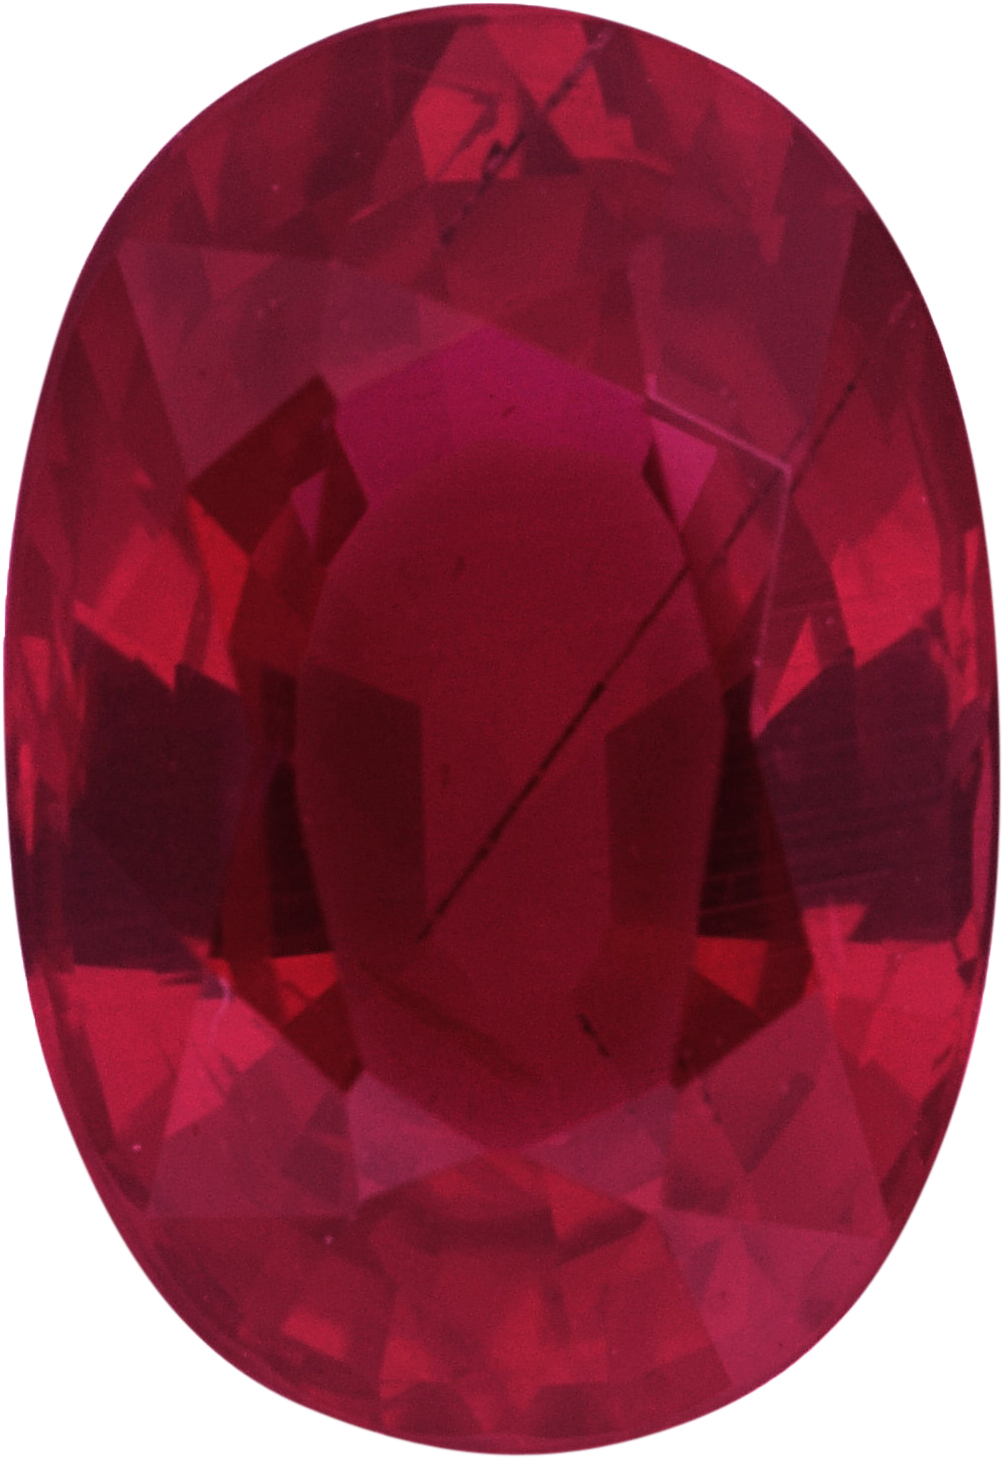 1.24 carats Ruby Loose Gemstone in Oval Cut, 7.52 x 5.17 mm